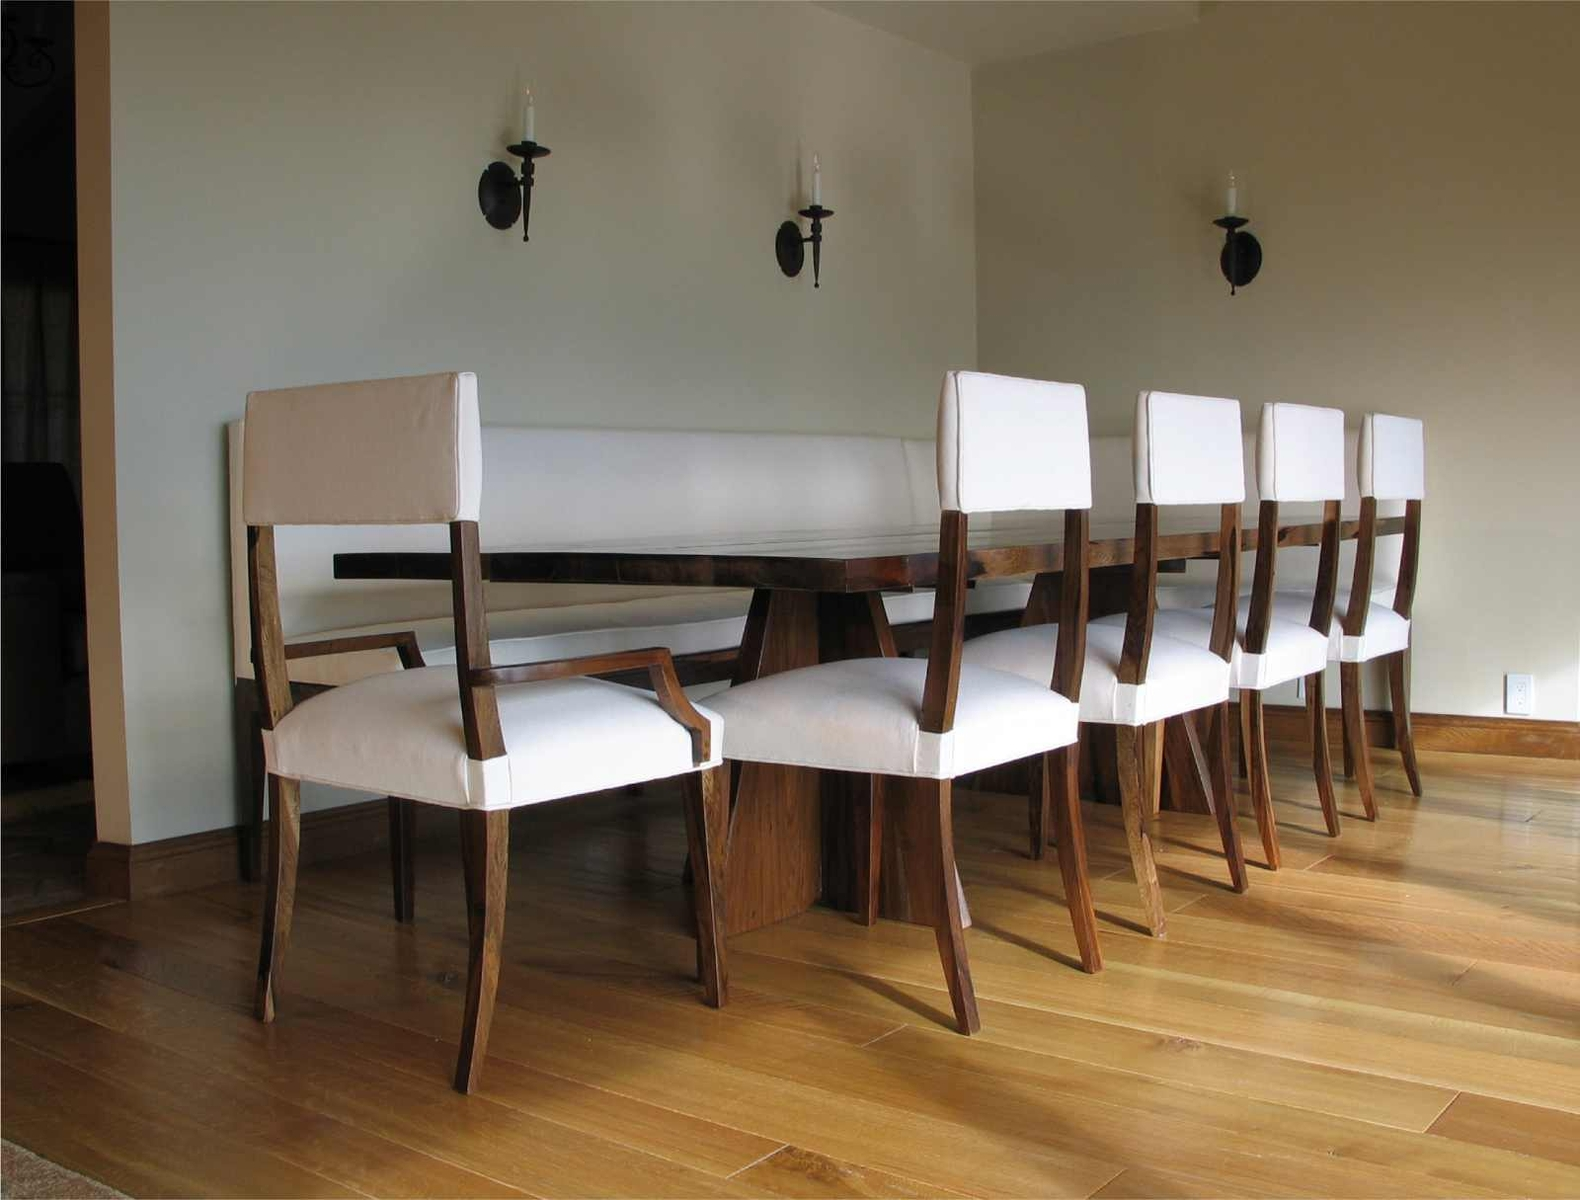 Banquette Seating Design For Compact And Fashionable Gathering Season HomesFeed